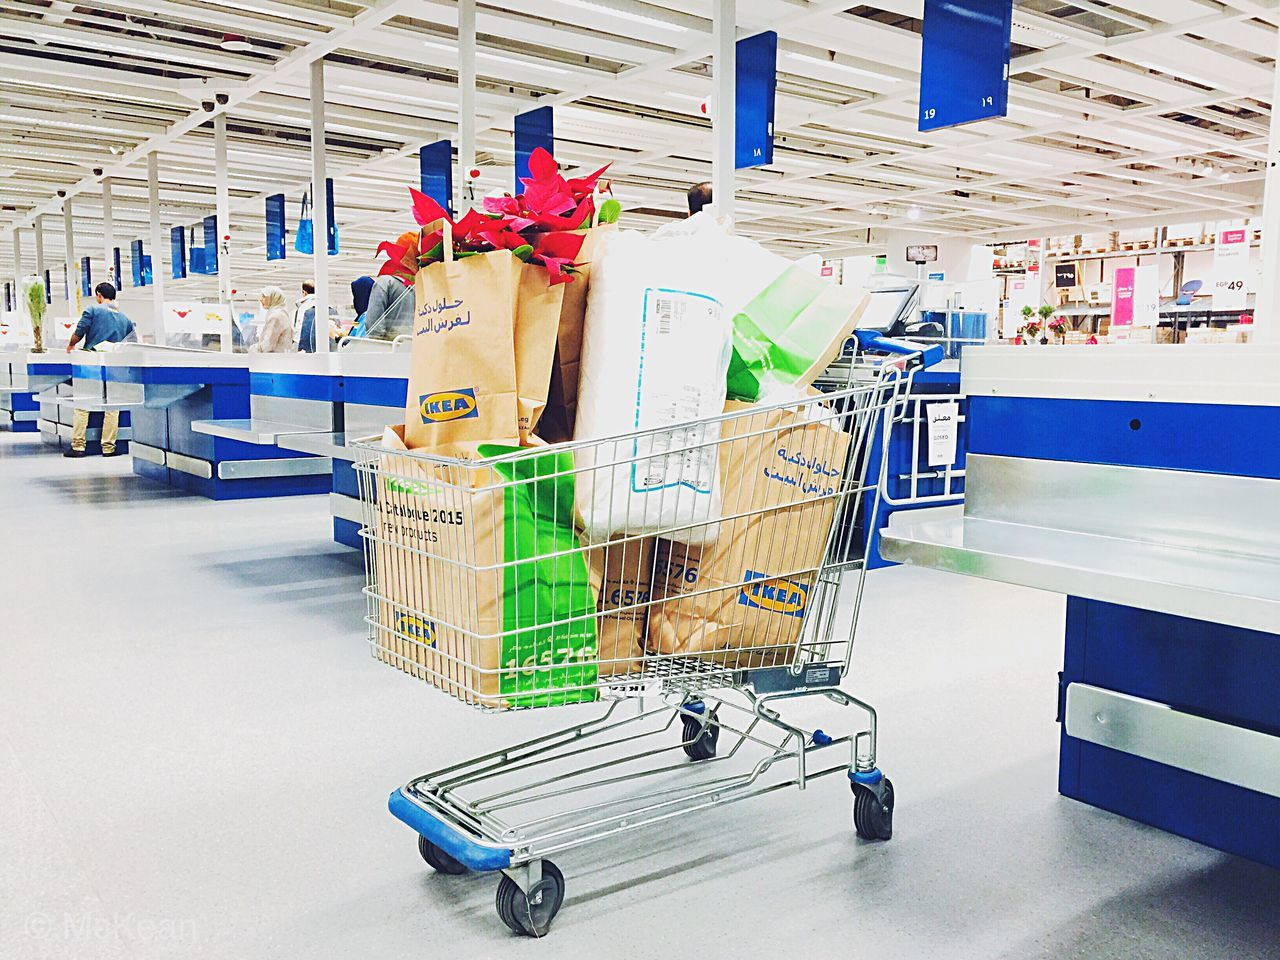 VIEW OF SHOPPING CART IN SHOP